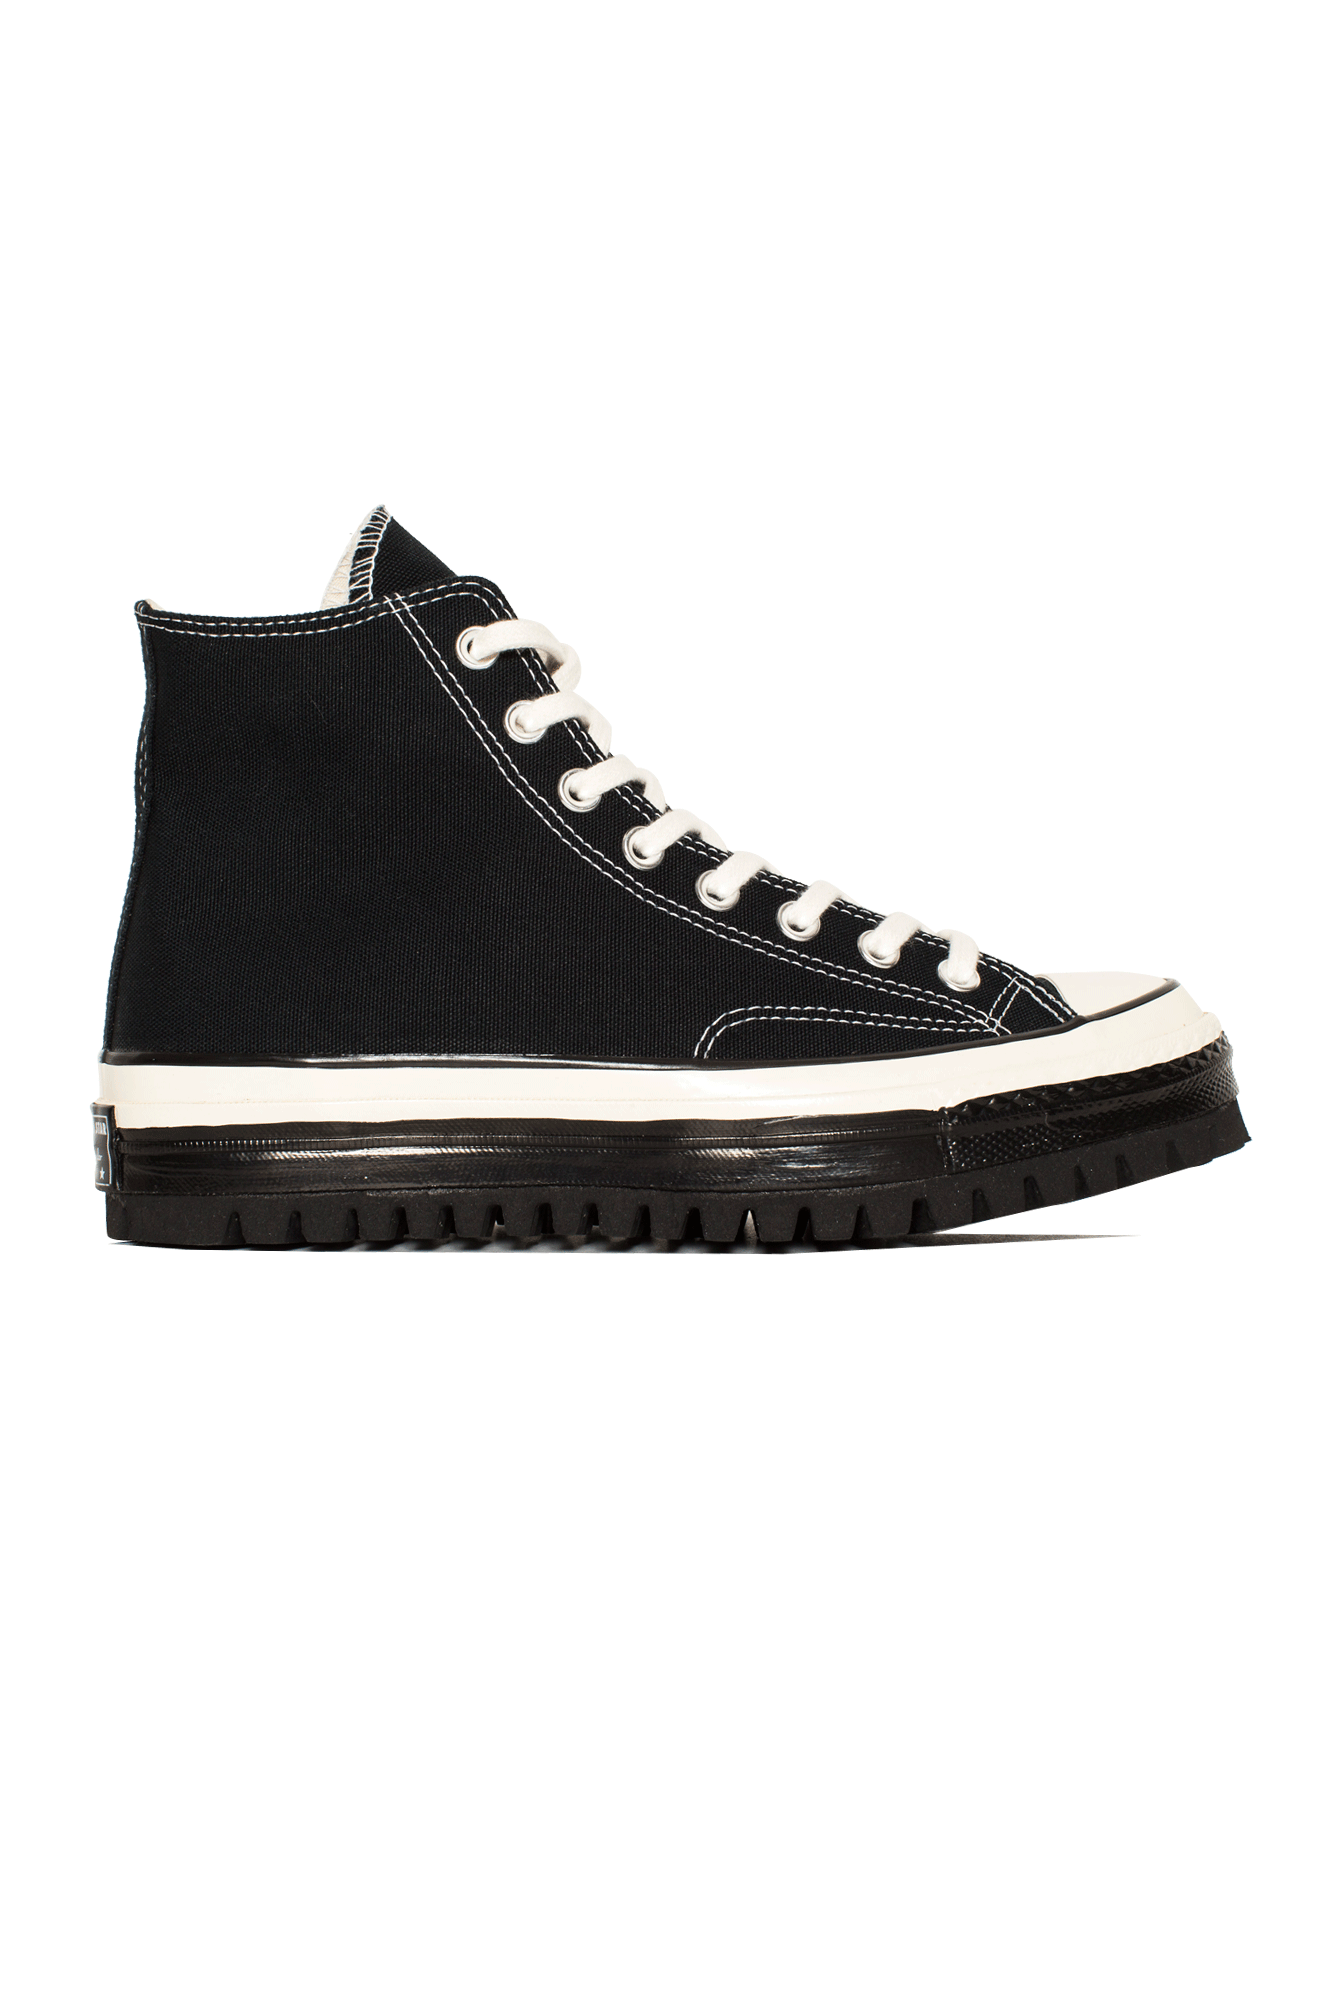 Converse Sneakers Chuck 70 Canvas Trek LDT HI Black 169144C#000#001#5 - One Block Down